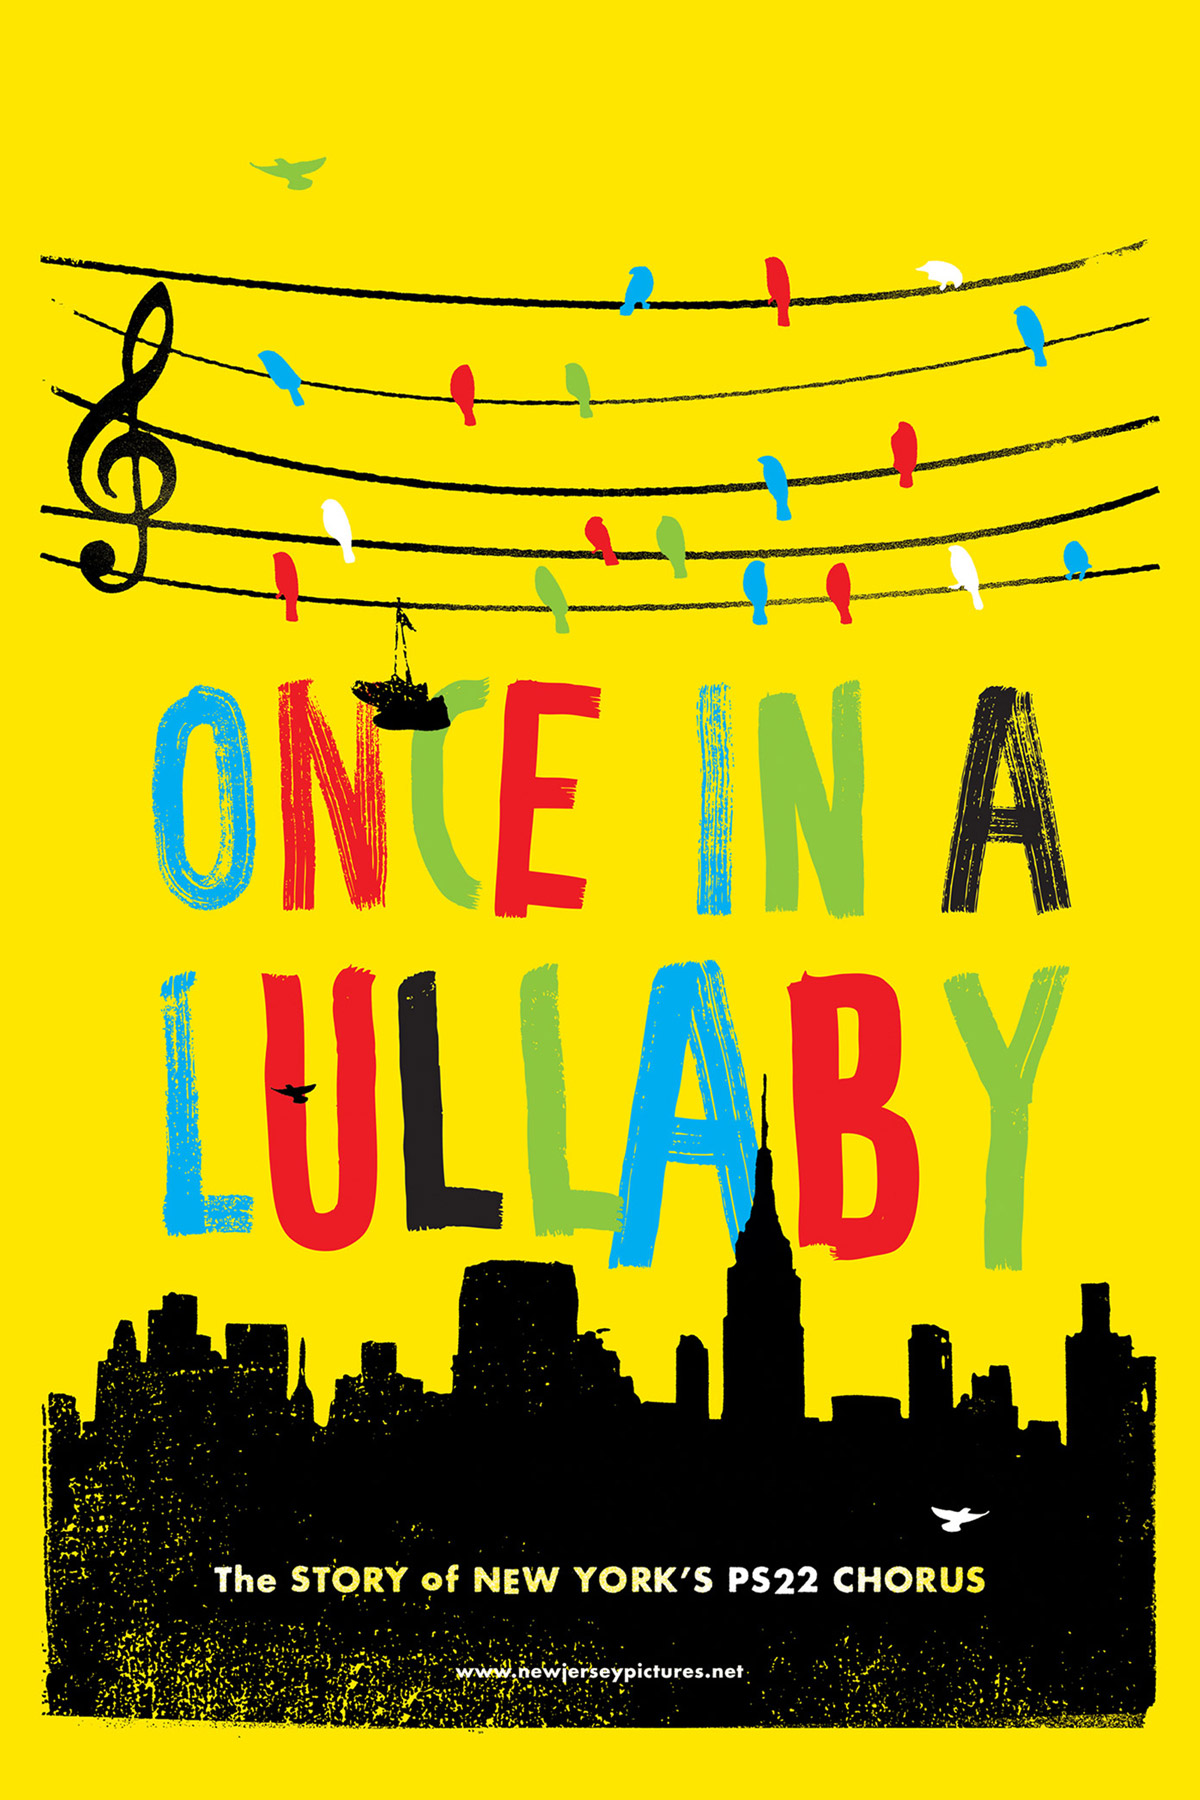 Once in a Lullaby Poster - The Heads of State